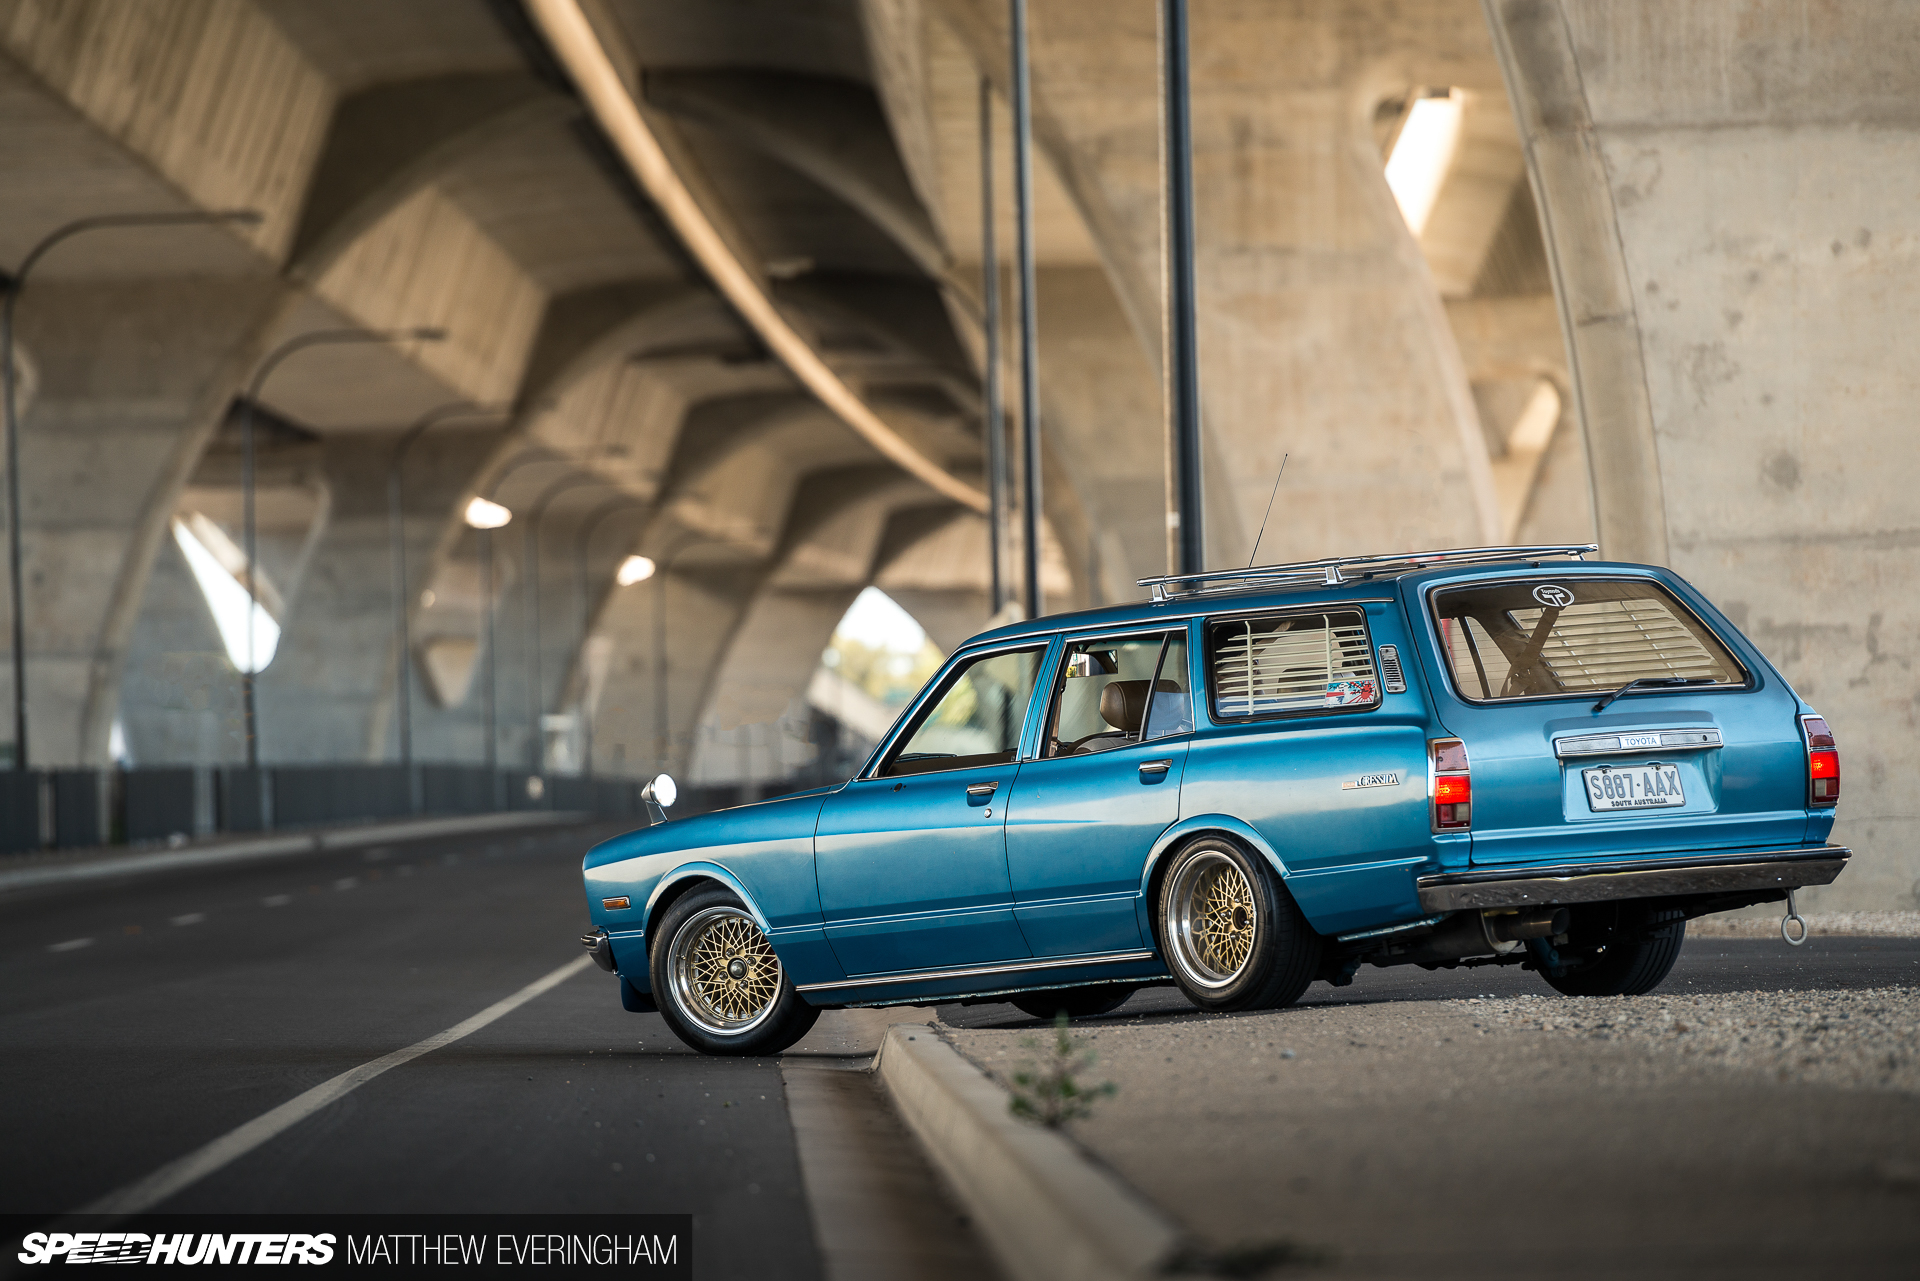 How To Build A True Sleeper - Speedhunters